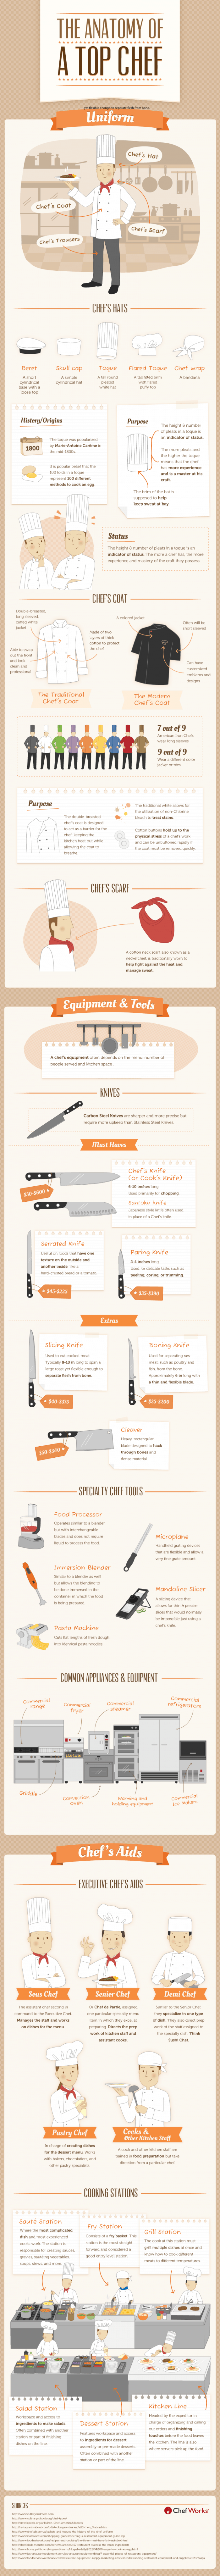 Anatomy of a top chef infographic